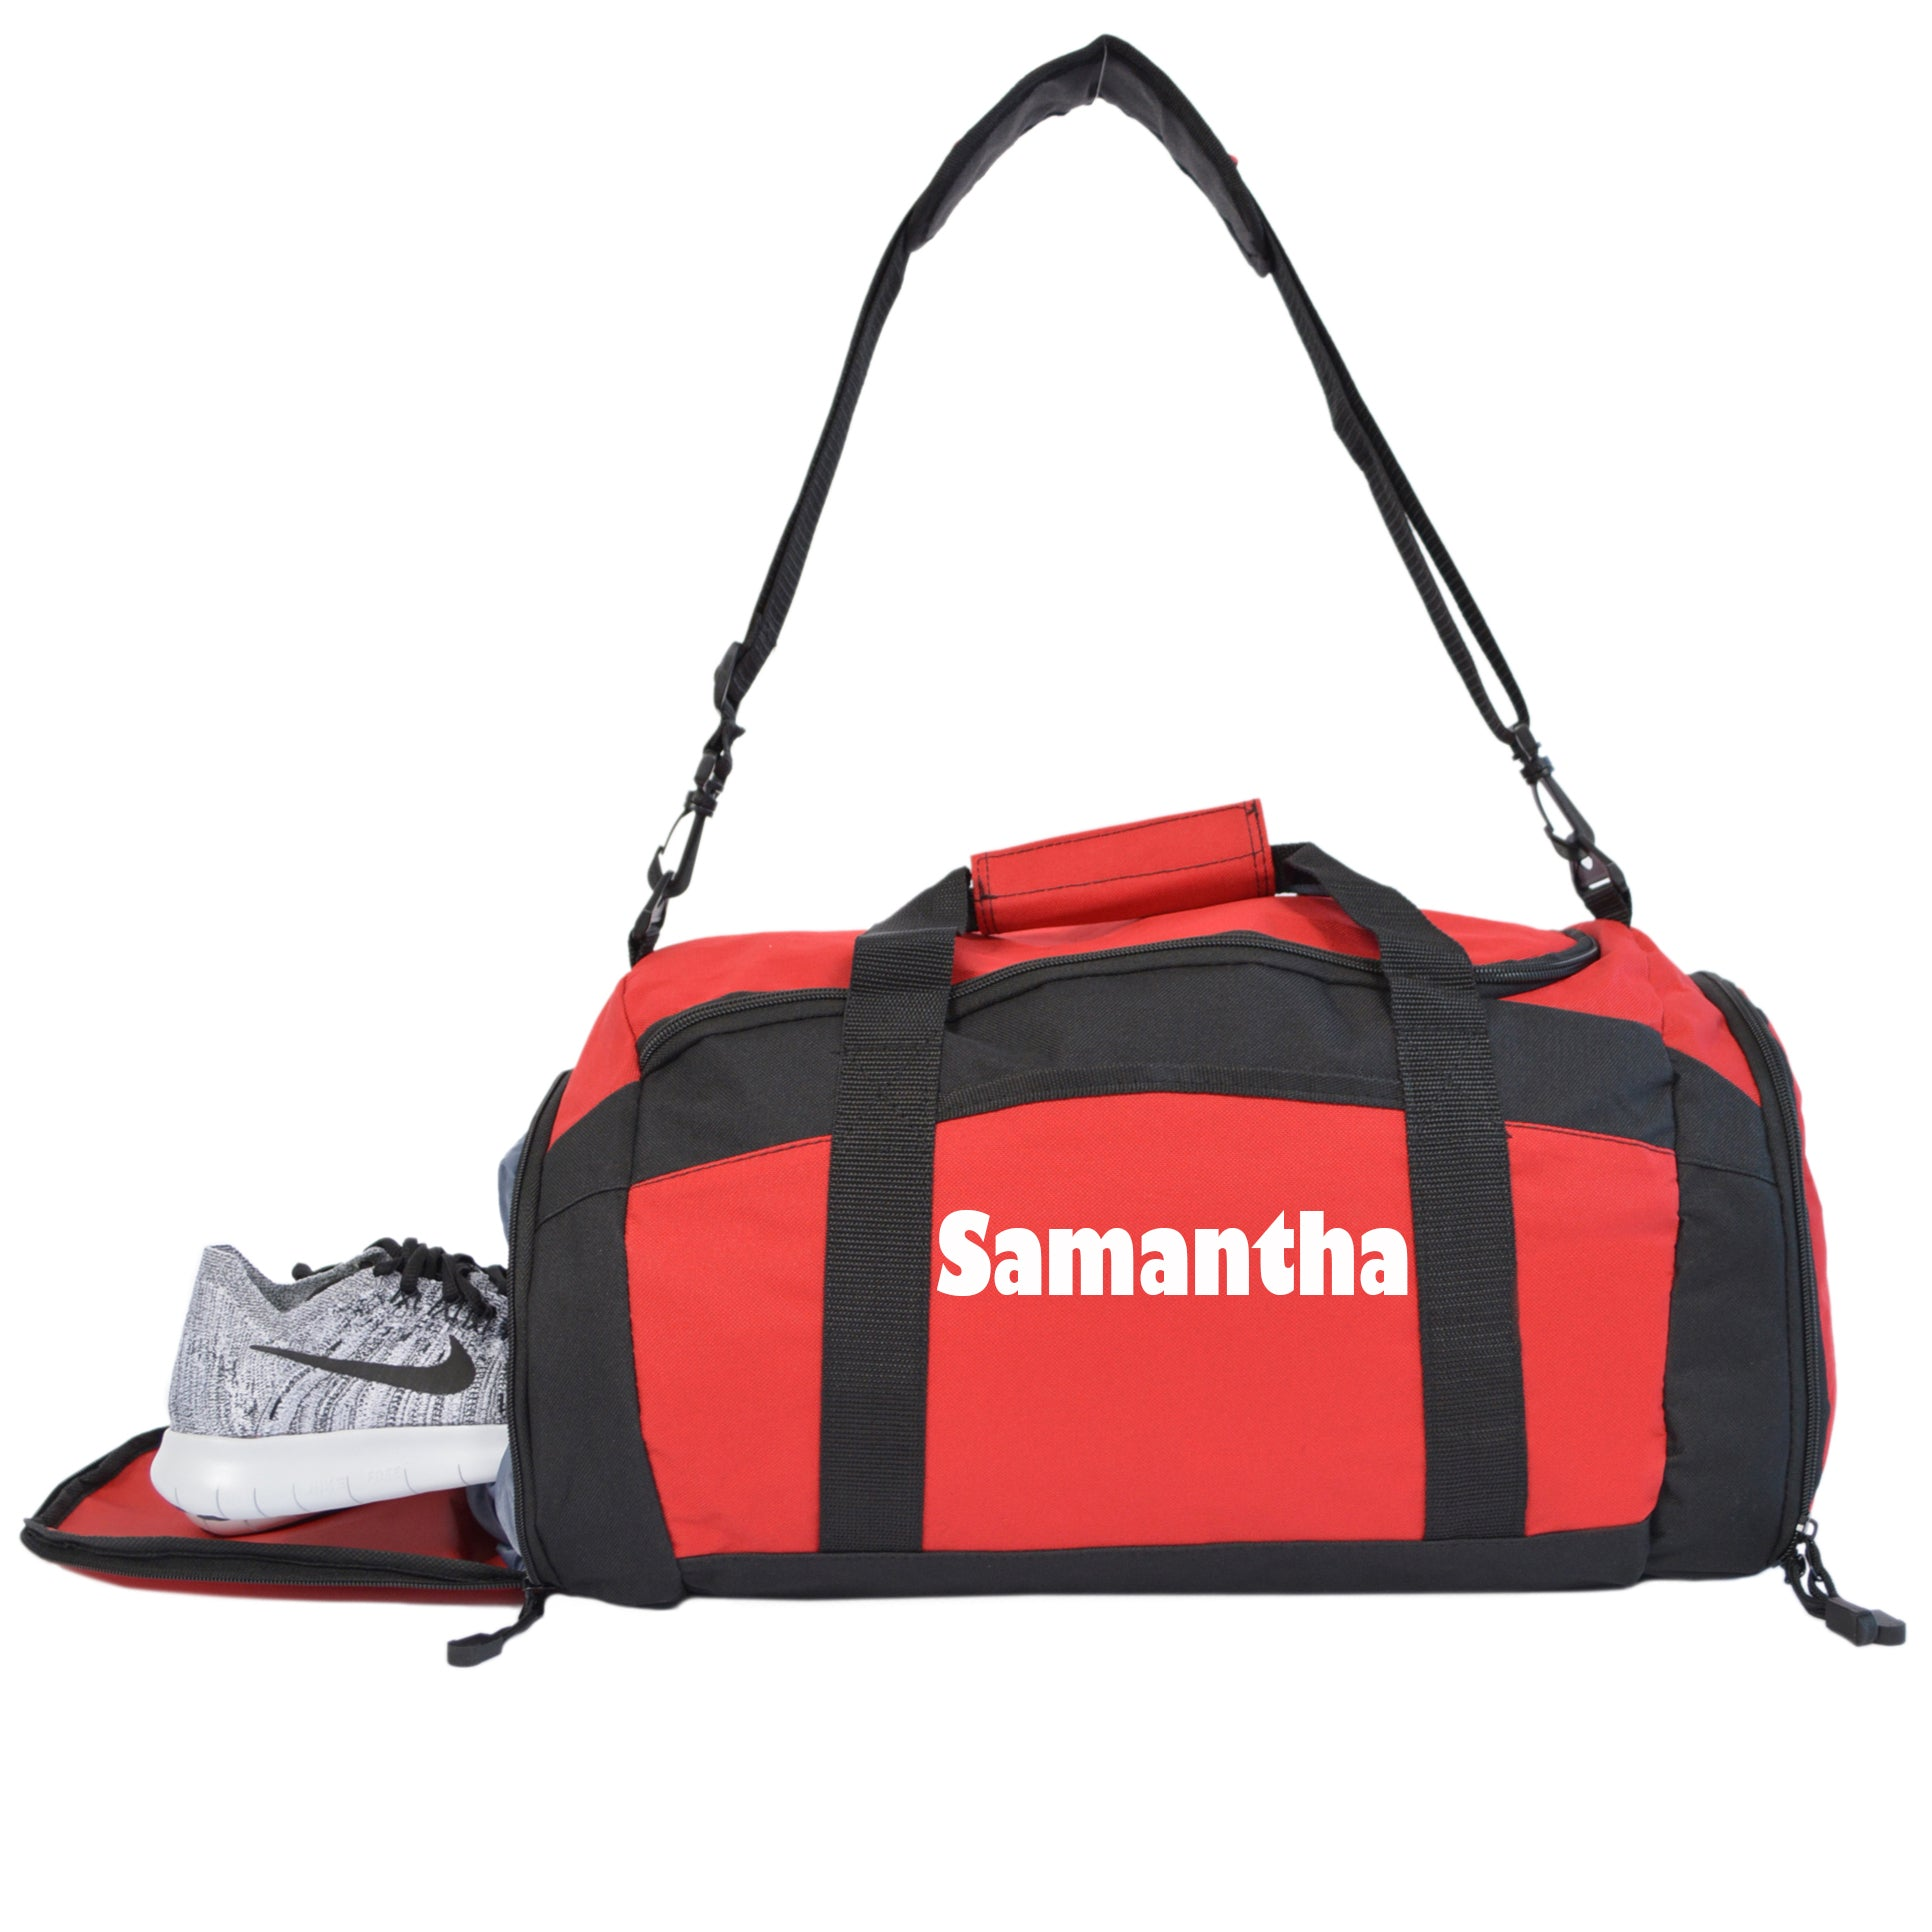 Personalized Gym Bag With Zippered Pockets and Player Name